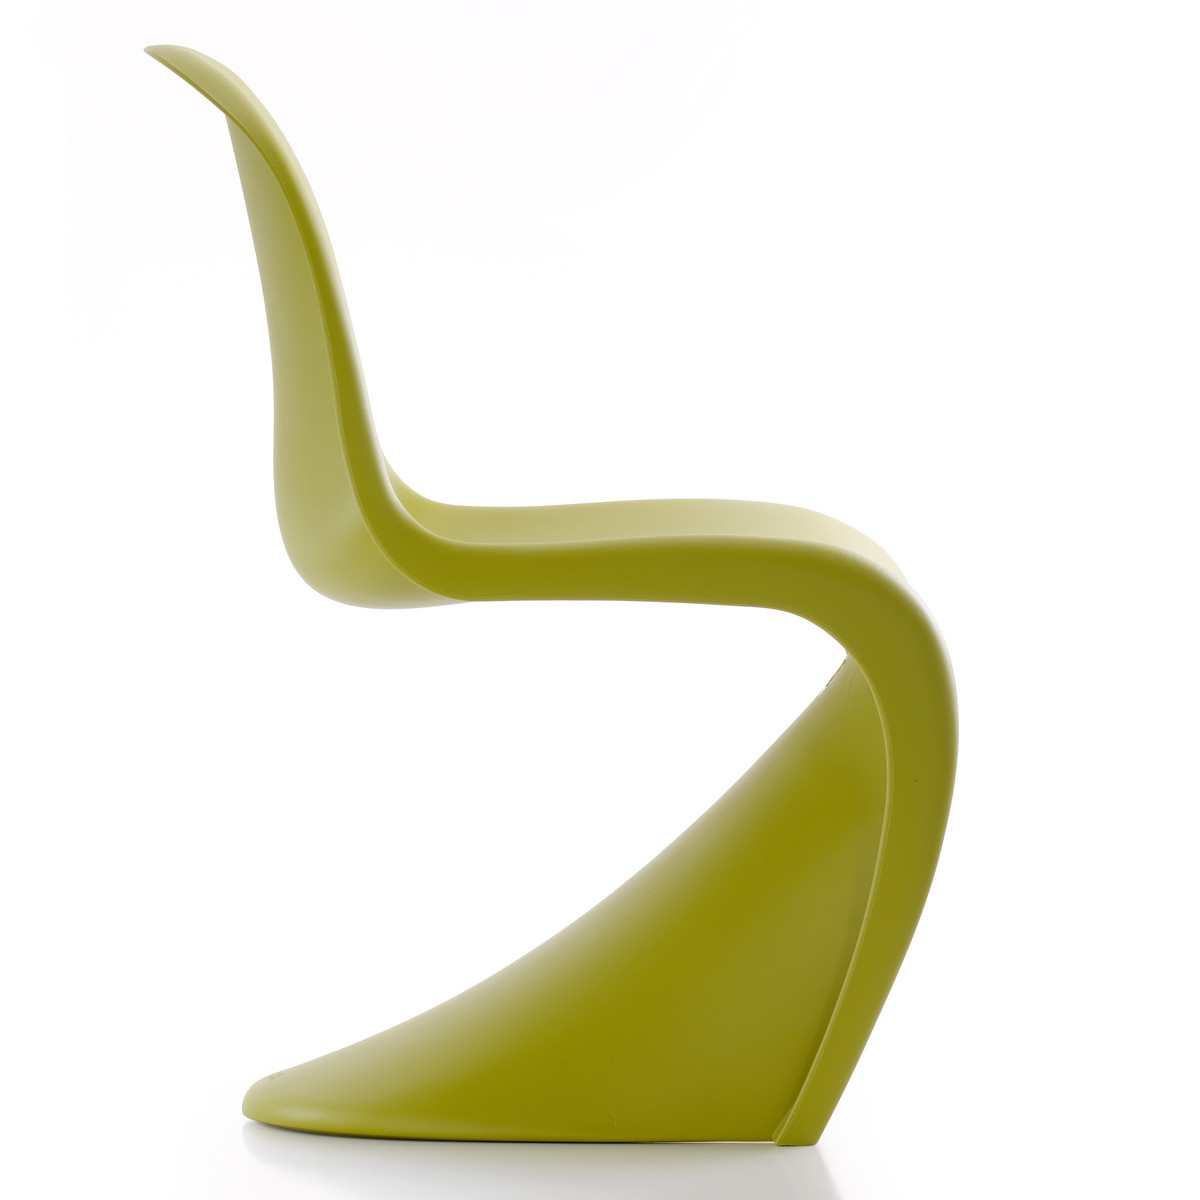 vitra panton chair chartreuse gr n t 61 h 83 b 50. Black Bedroom Furniture Sets. Home Design Ideas